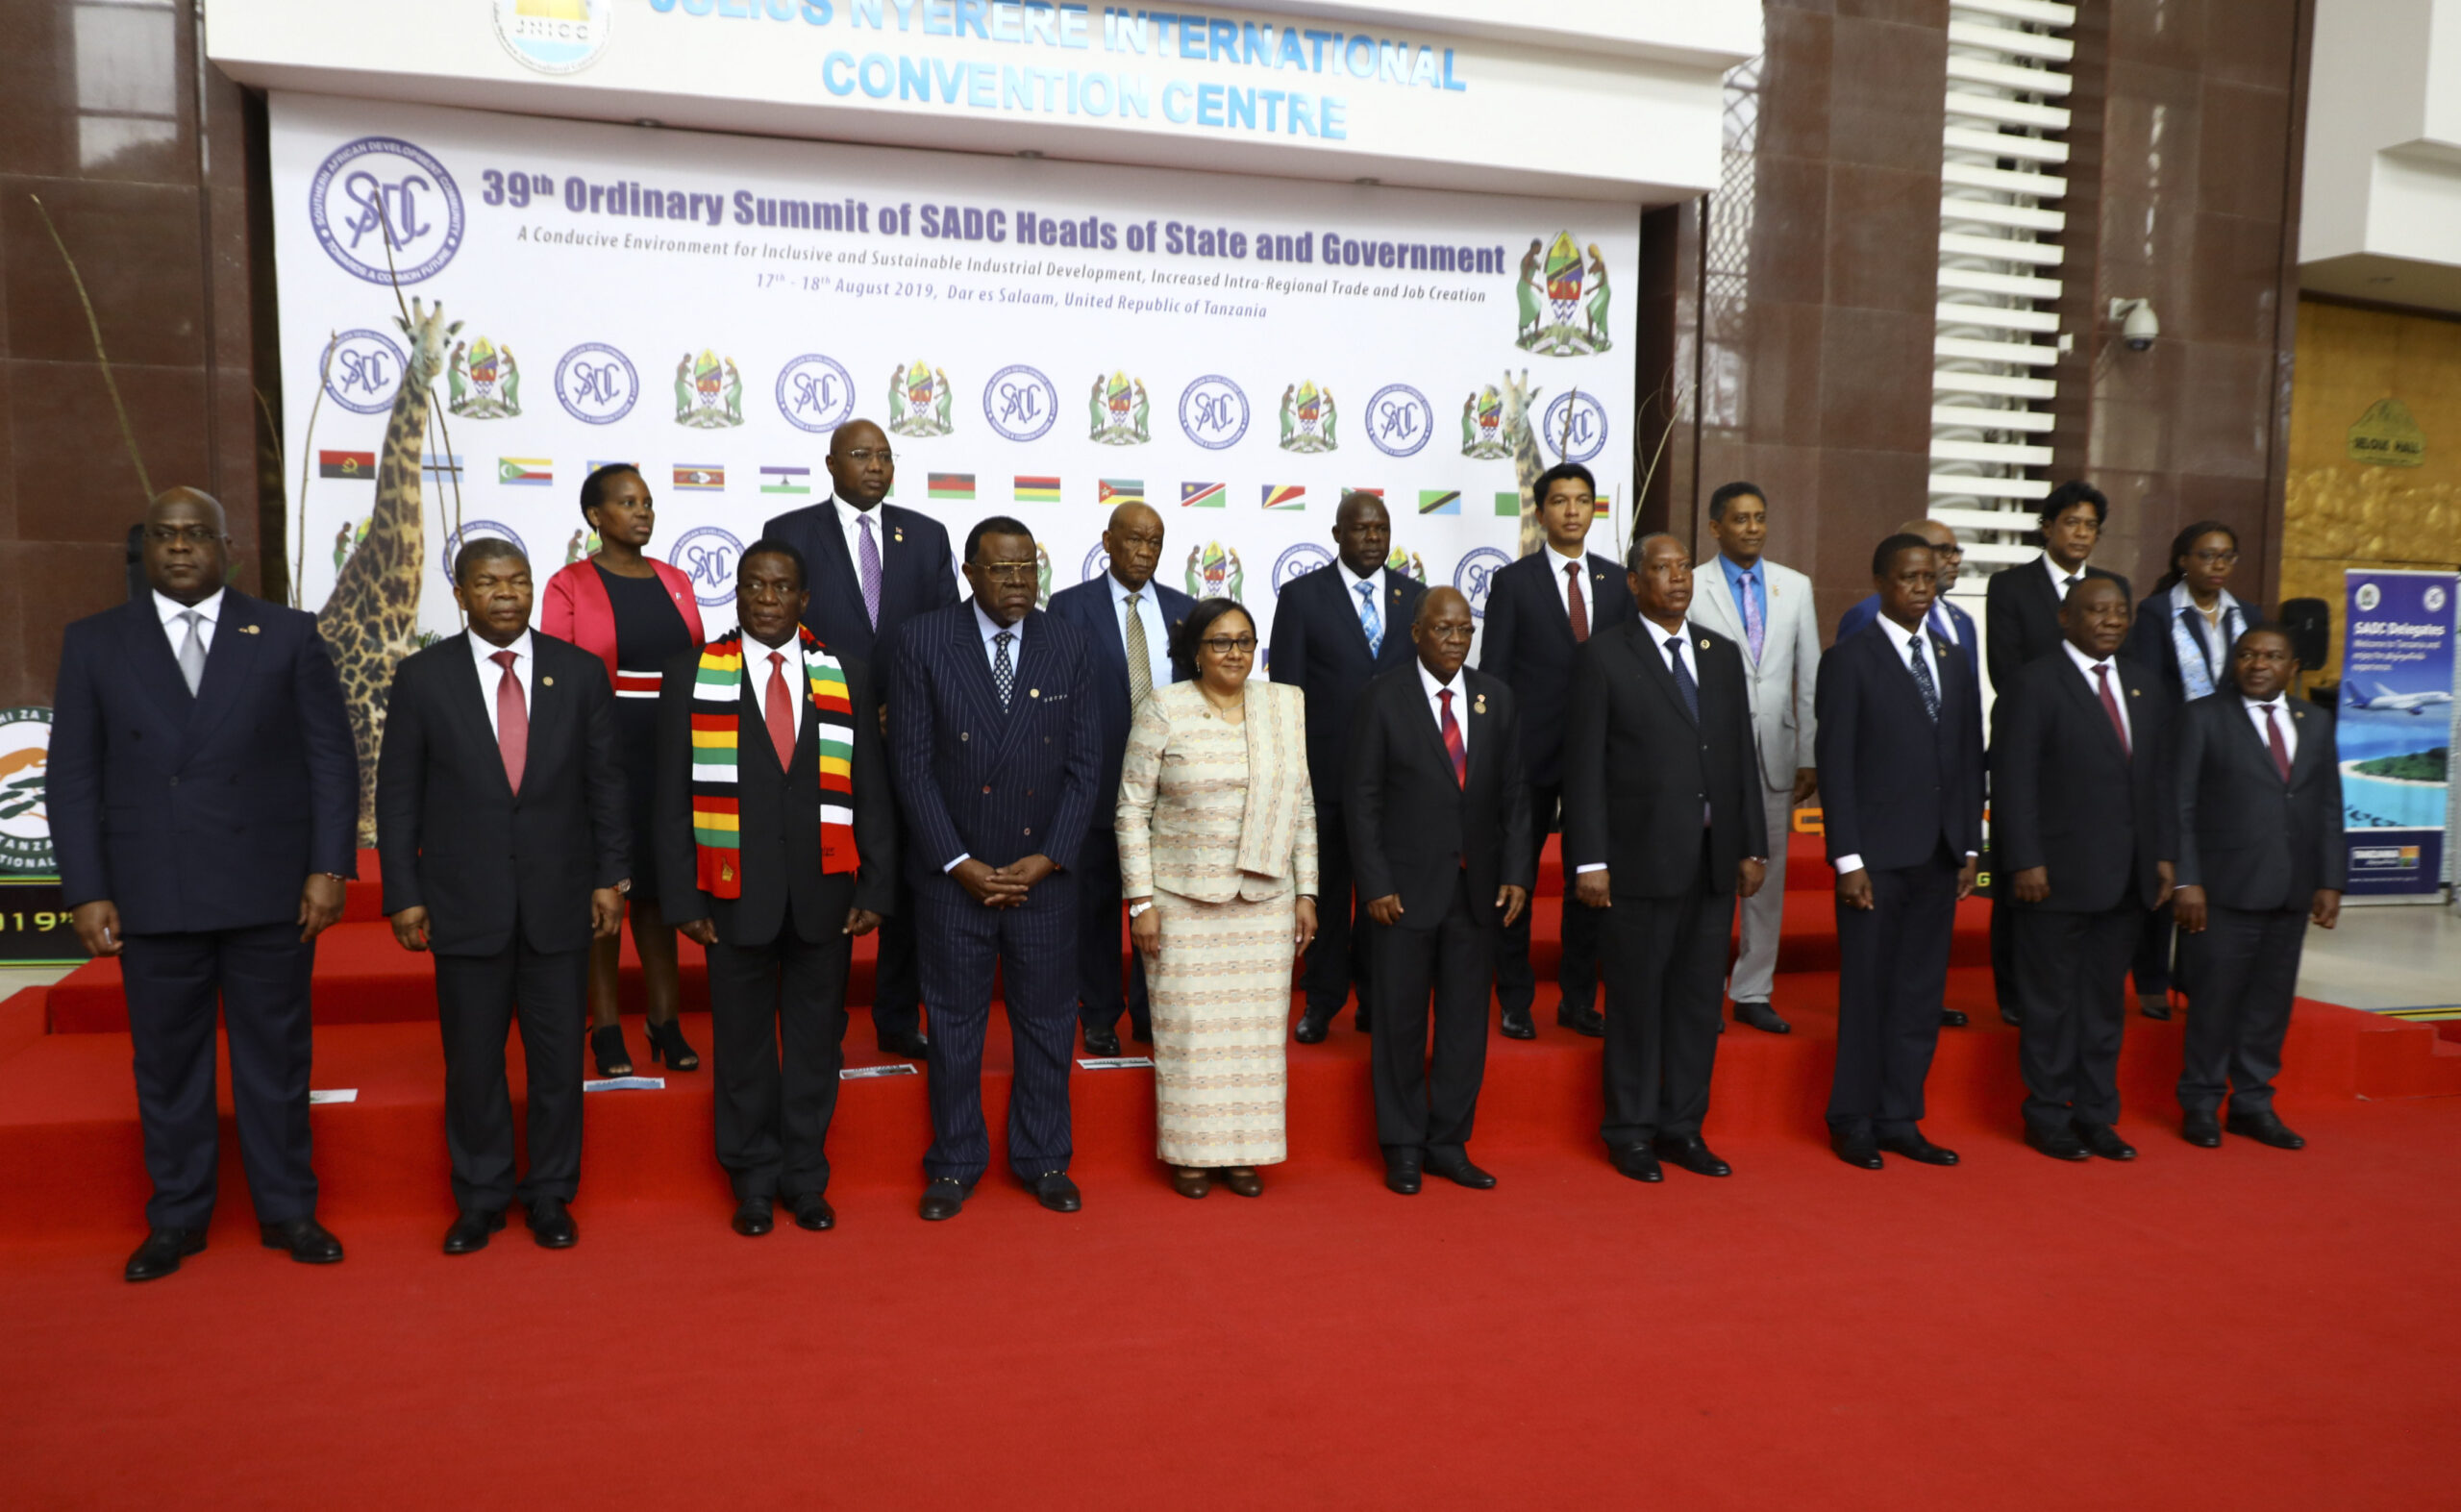 SADC leaders pose for a group photo the 2019 39th Ordinary Summit in Tanzania.Photo credit Xinhua